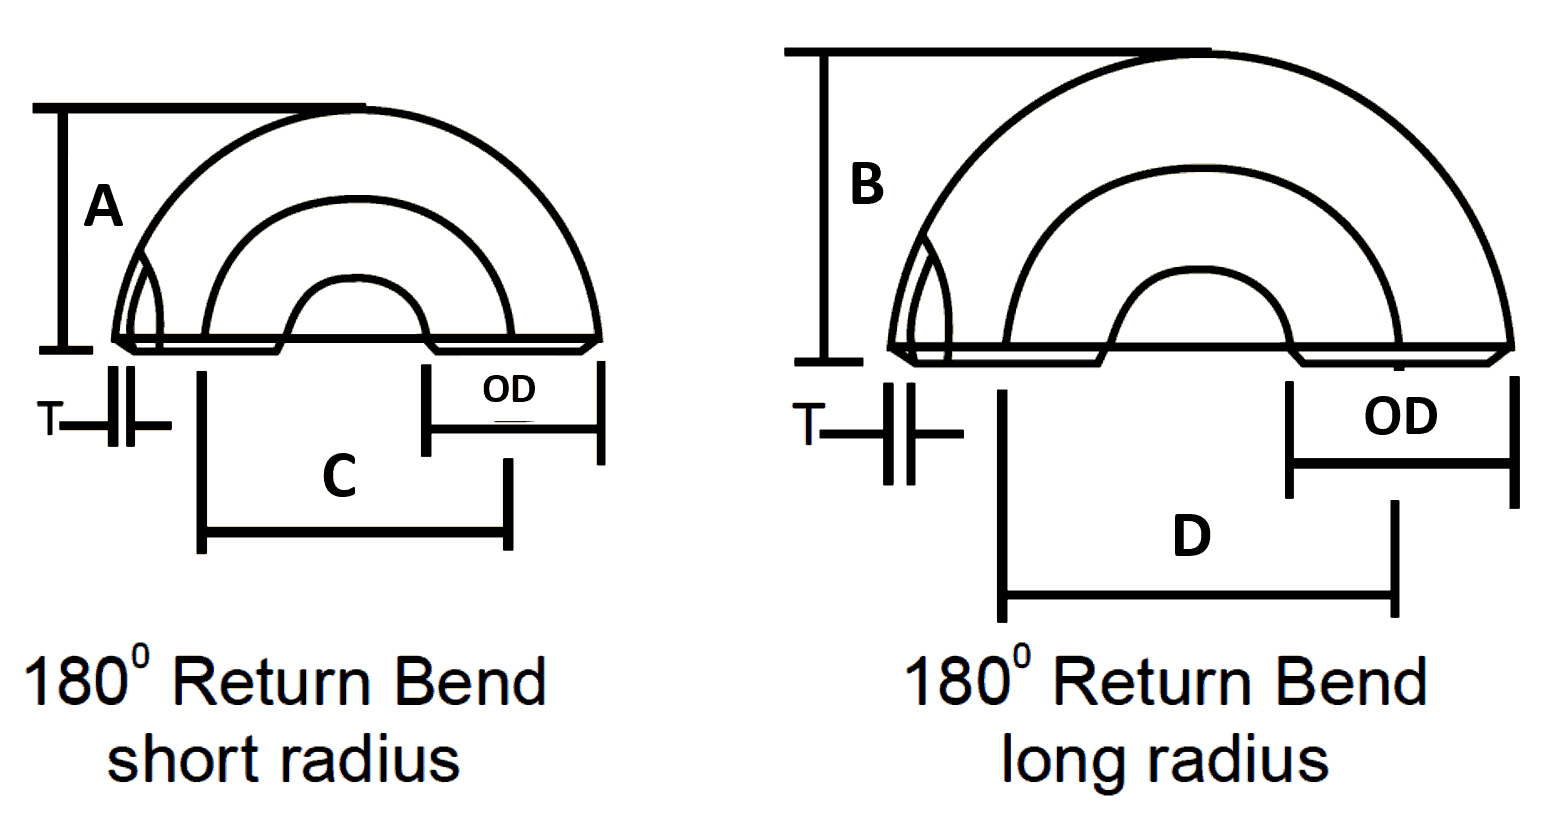 Pipe Bends & Return Dimensions in mm (Long & Short Radius)